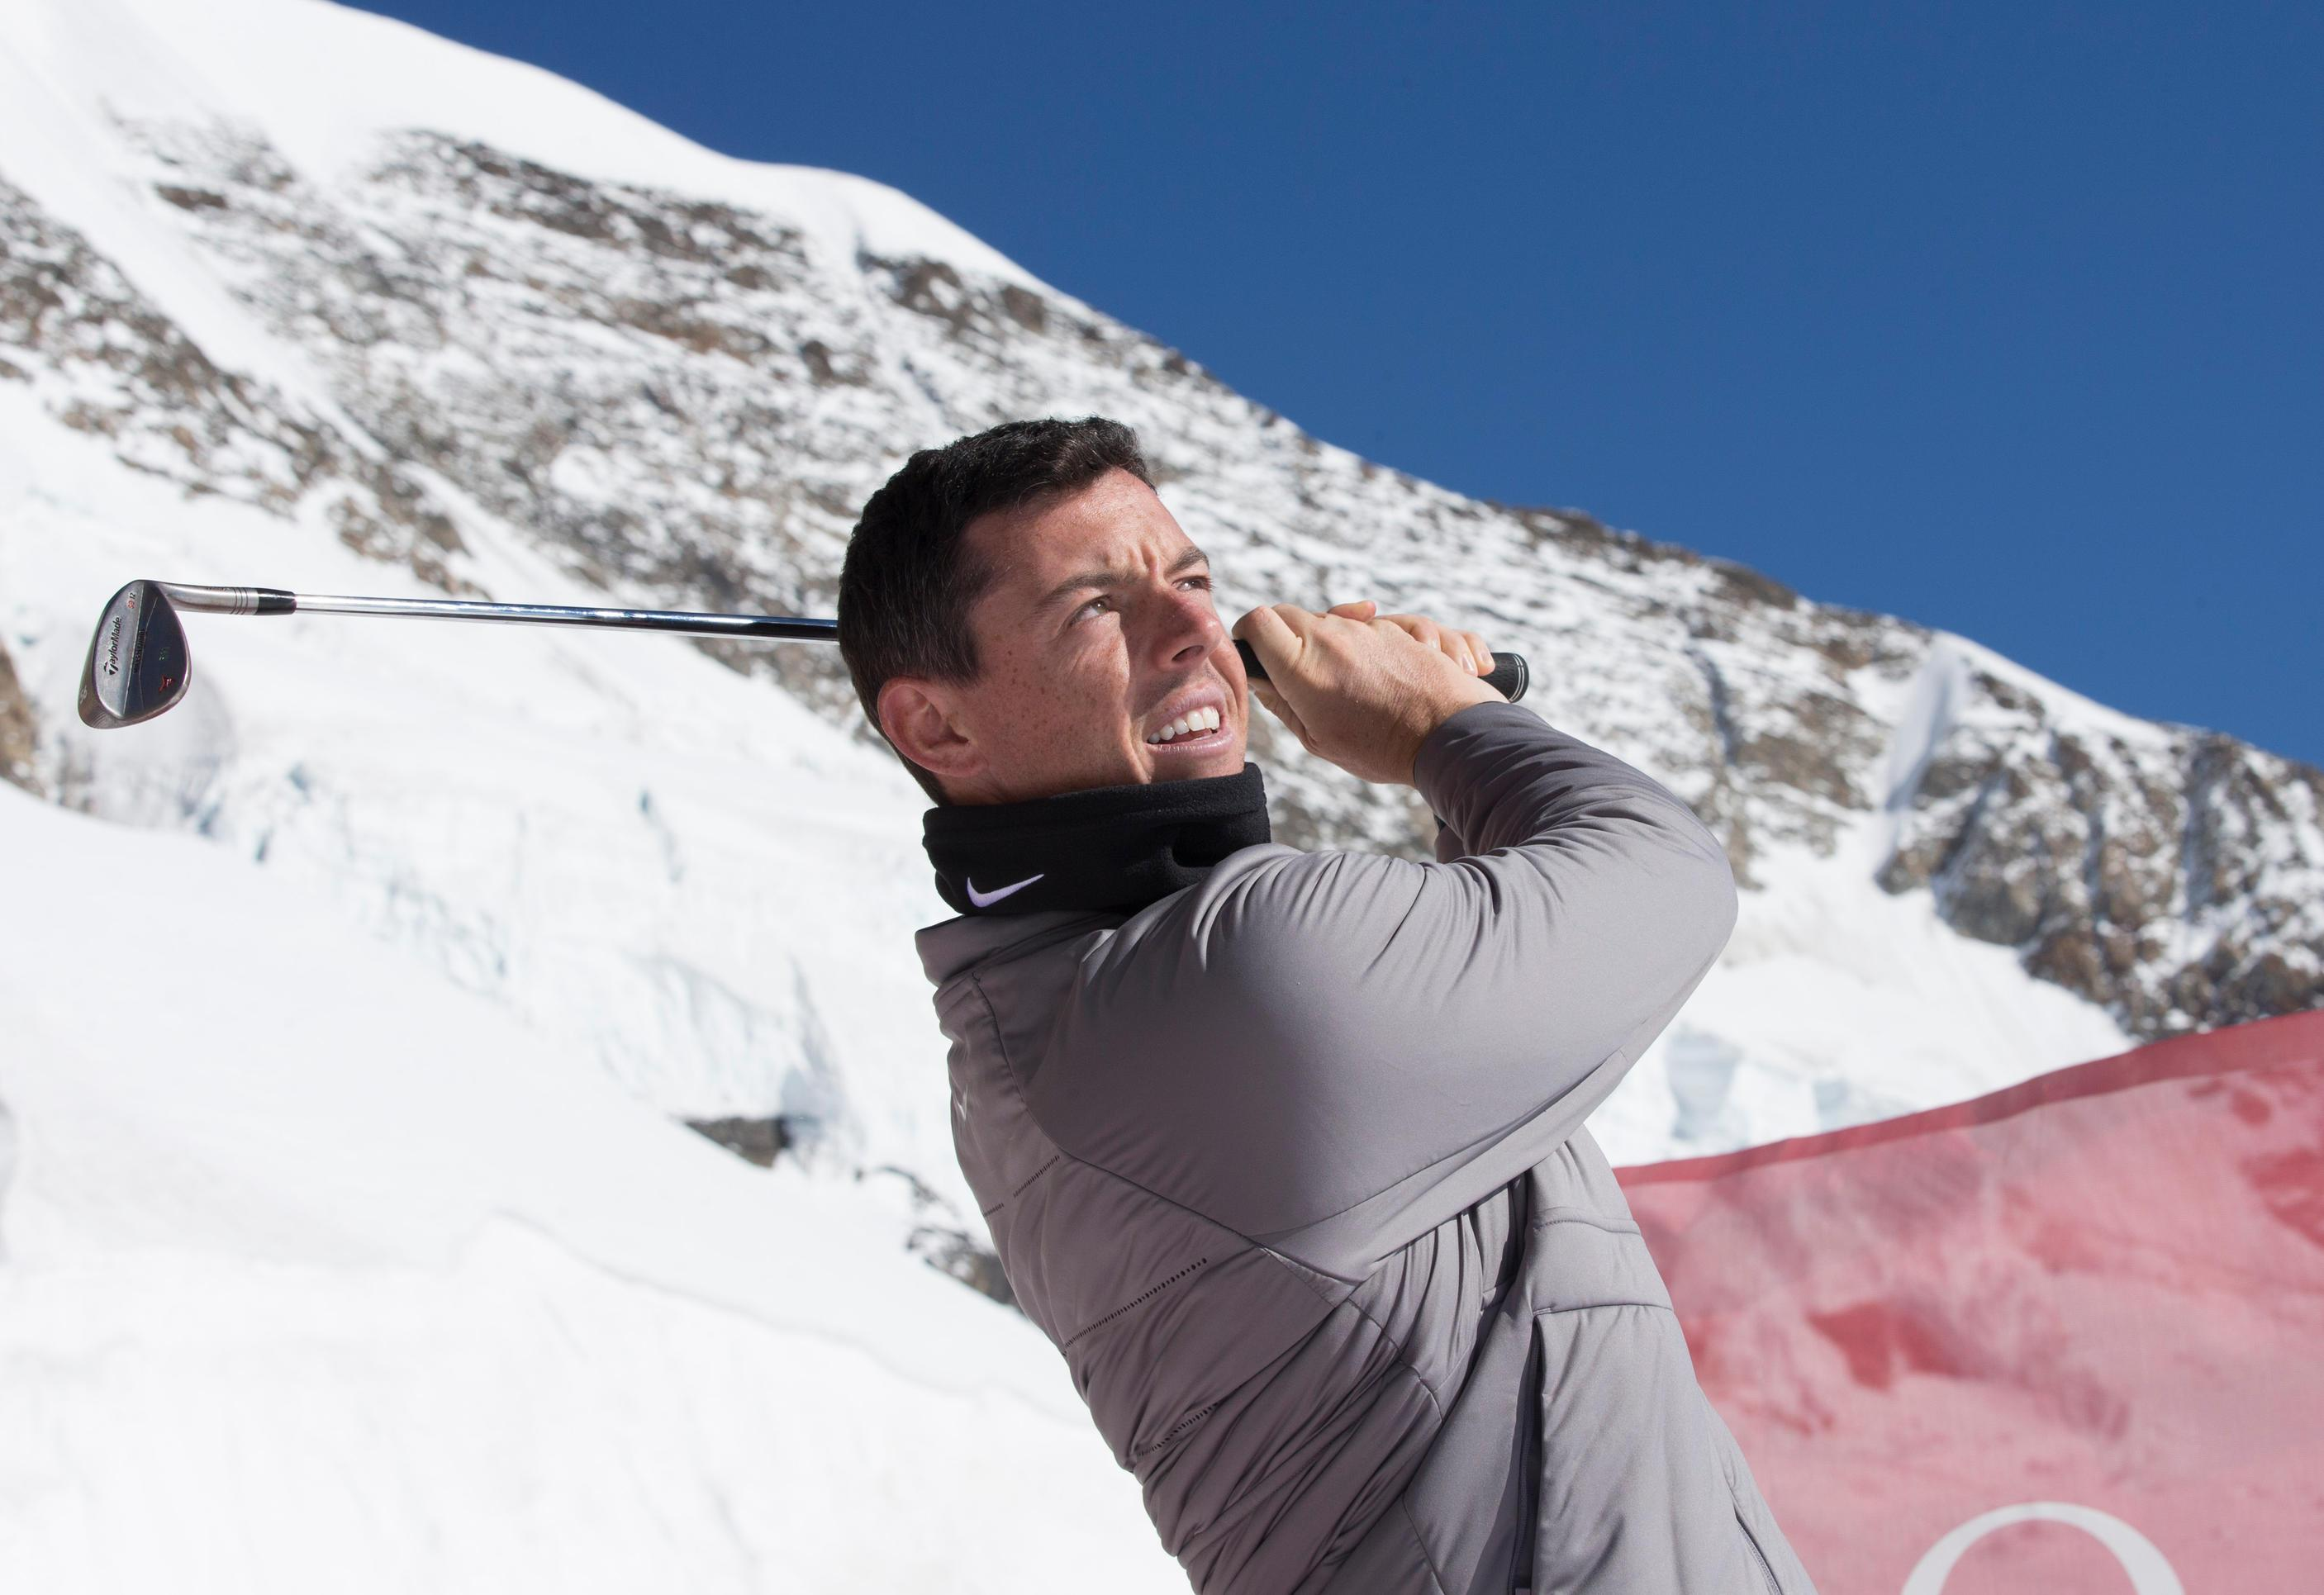 Northern Ireland hero Rory McIlroy has been out in Switzerland this month playing in a golf demonstration event on the Aletsch glacier of Jungfraujoch